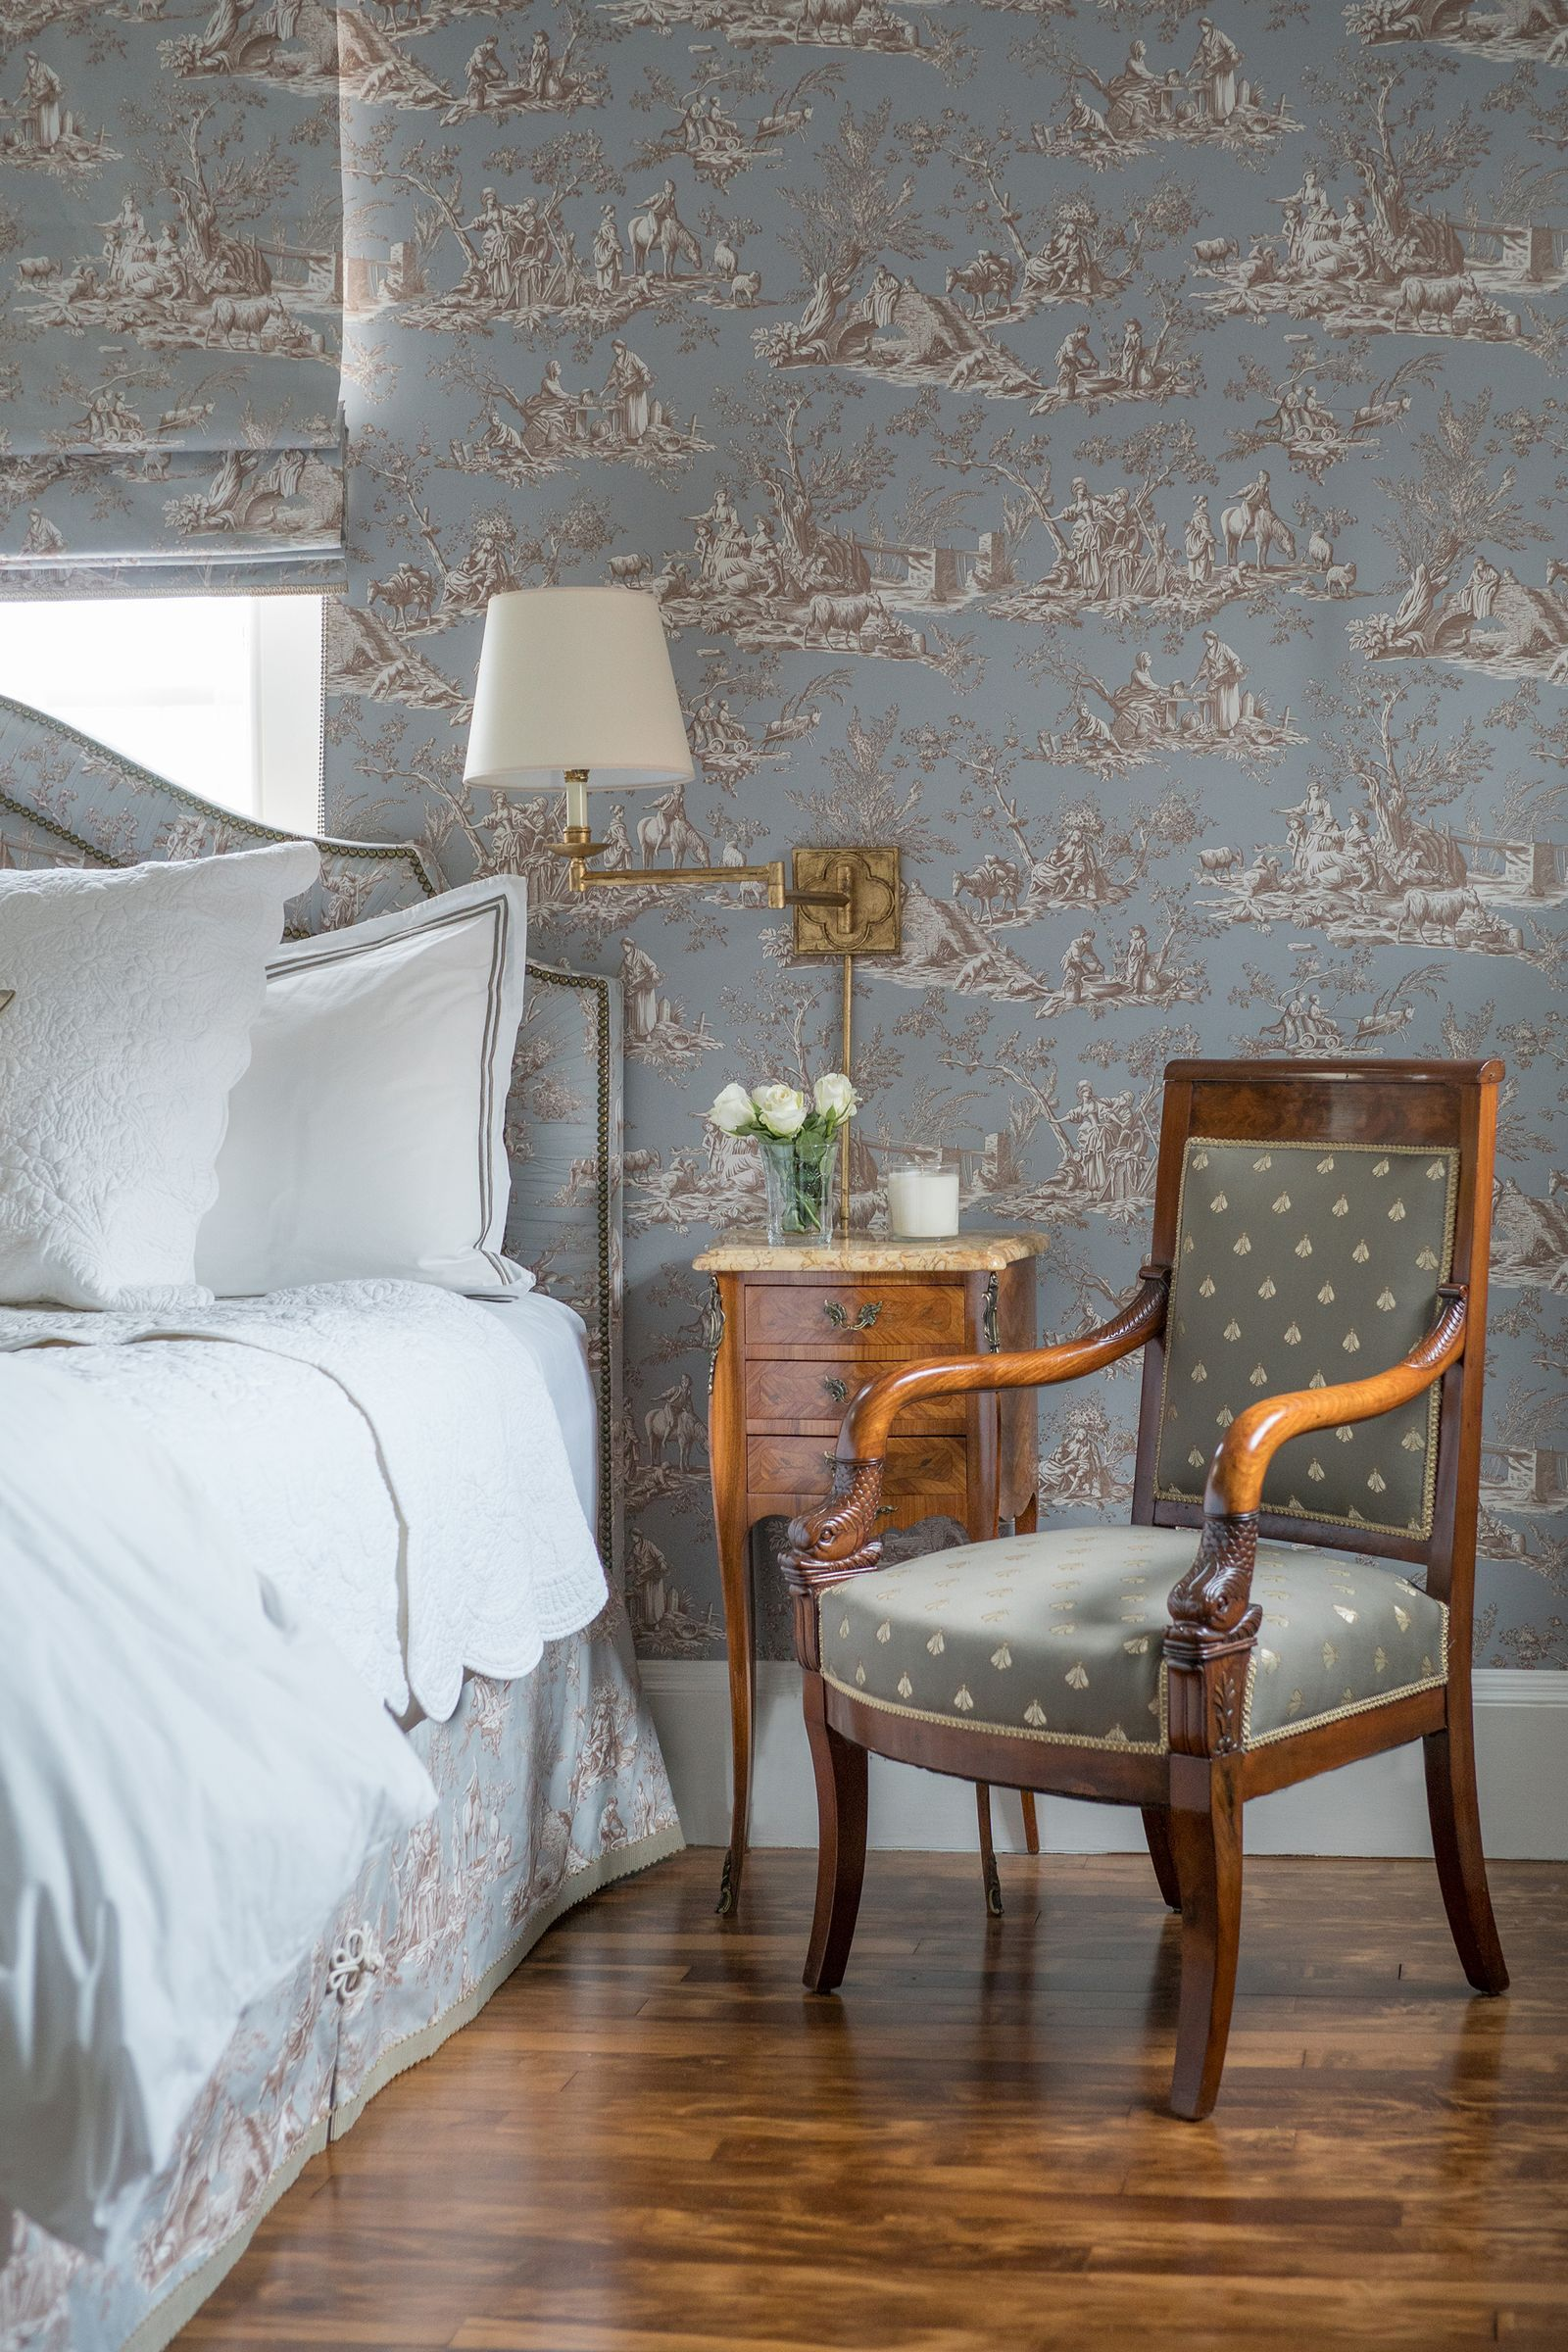 These Stunning Wallpapers Will Give Your Bedroom a New